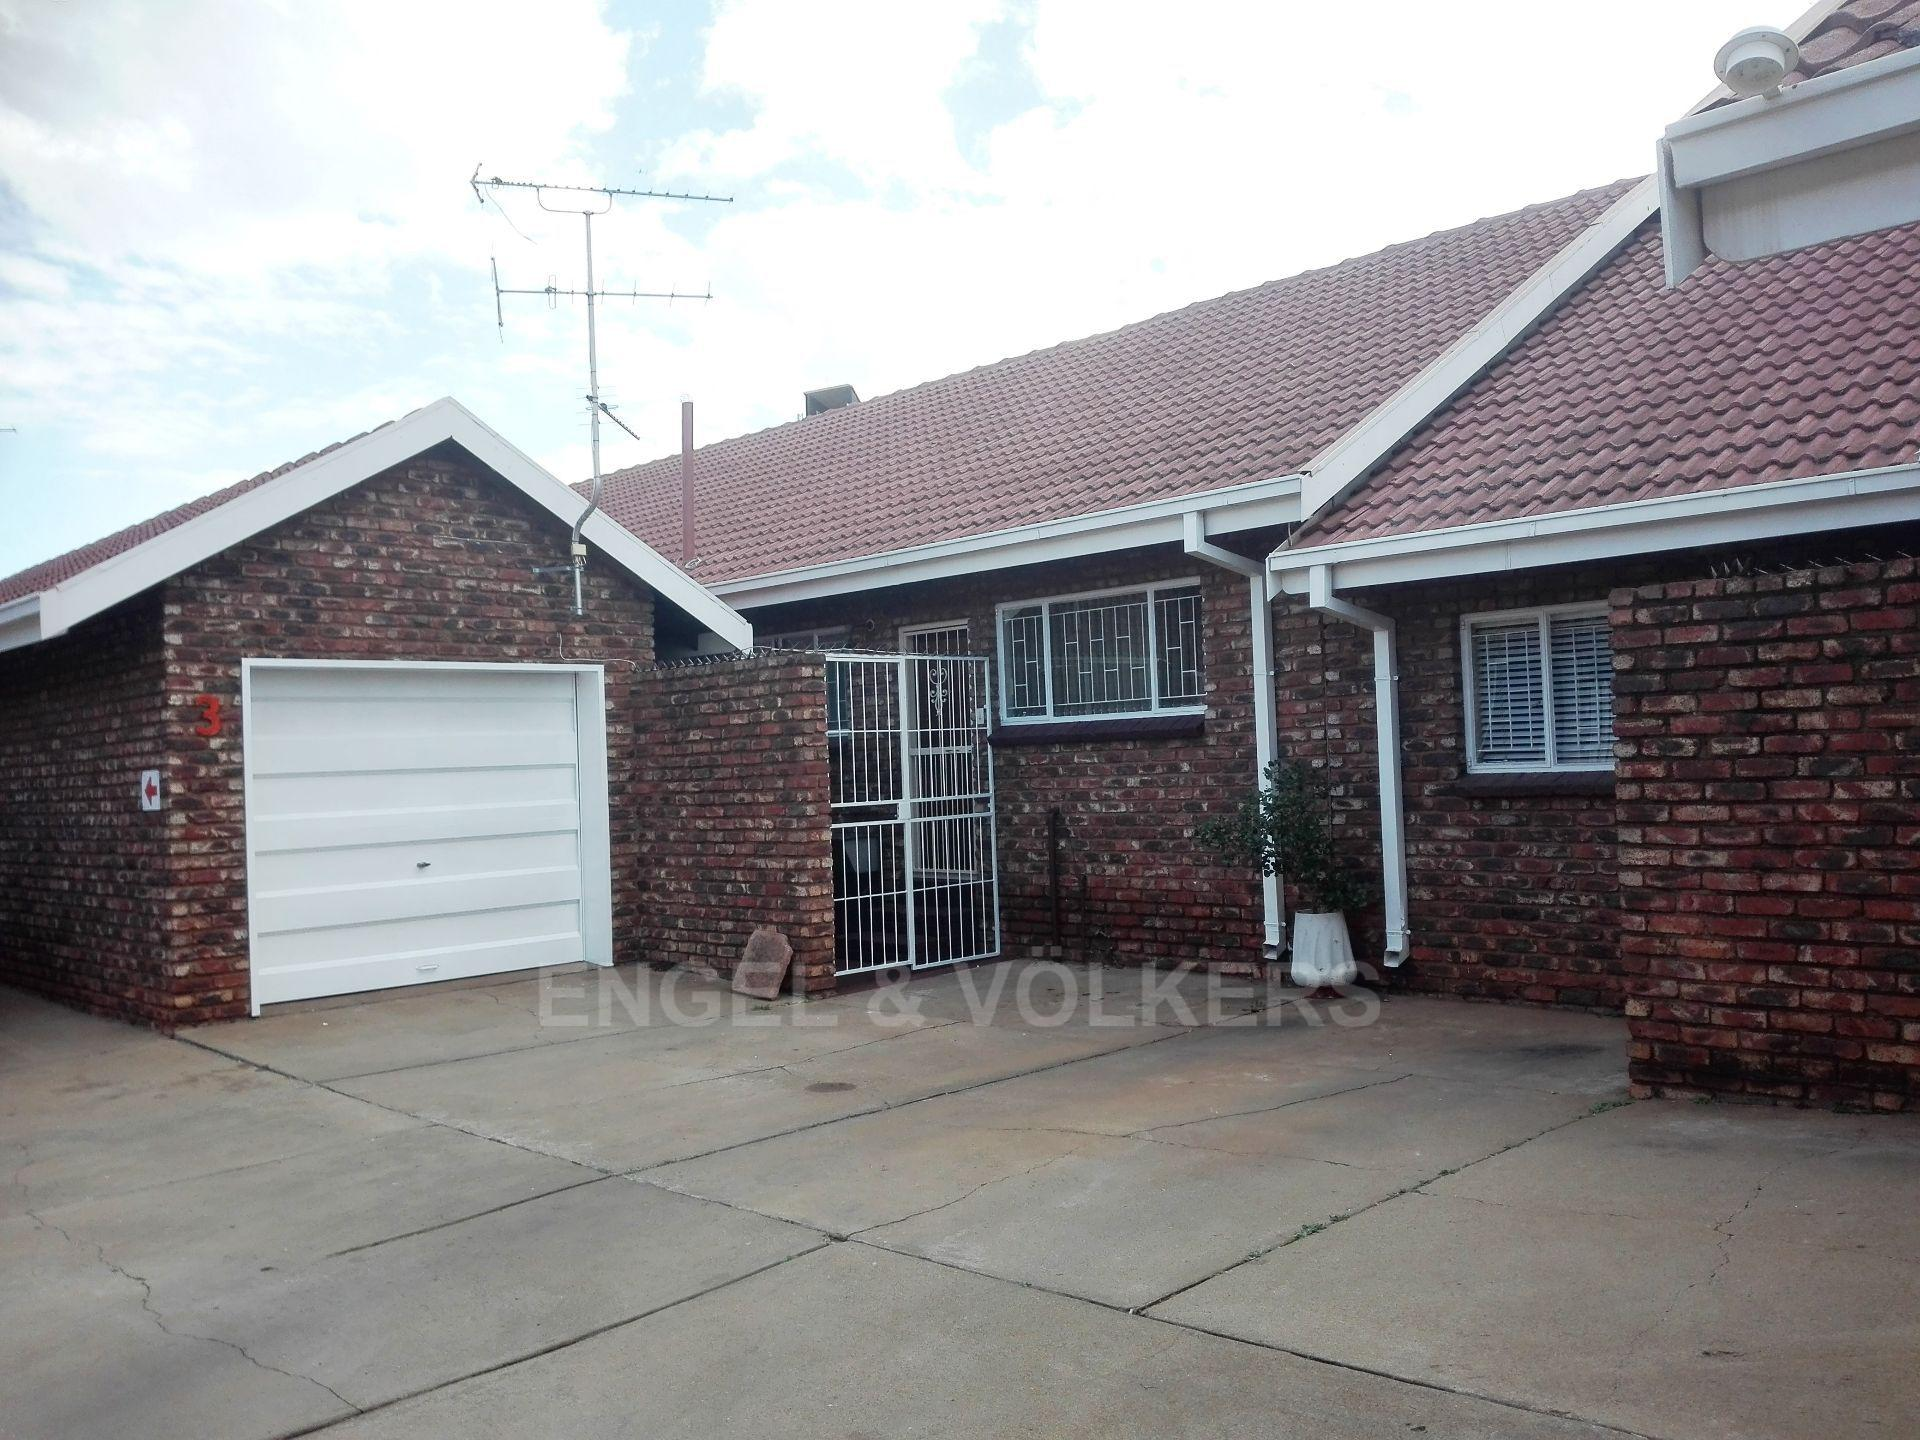 Potchefstroom Central for sale property. Ref No: 13498695. Picture no 1